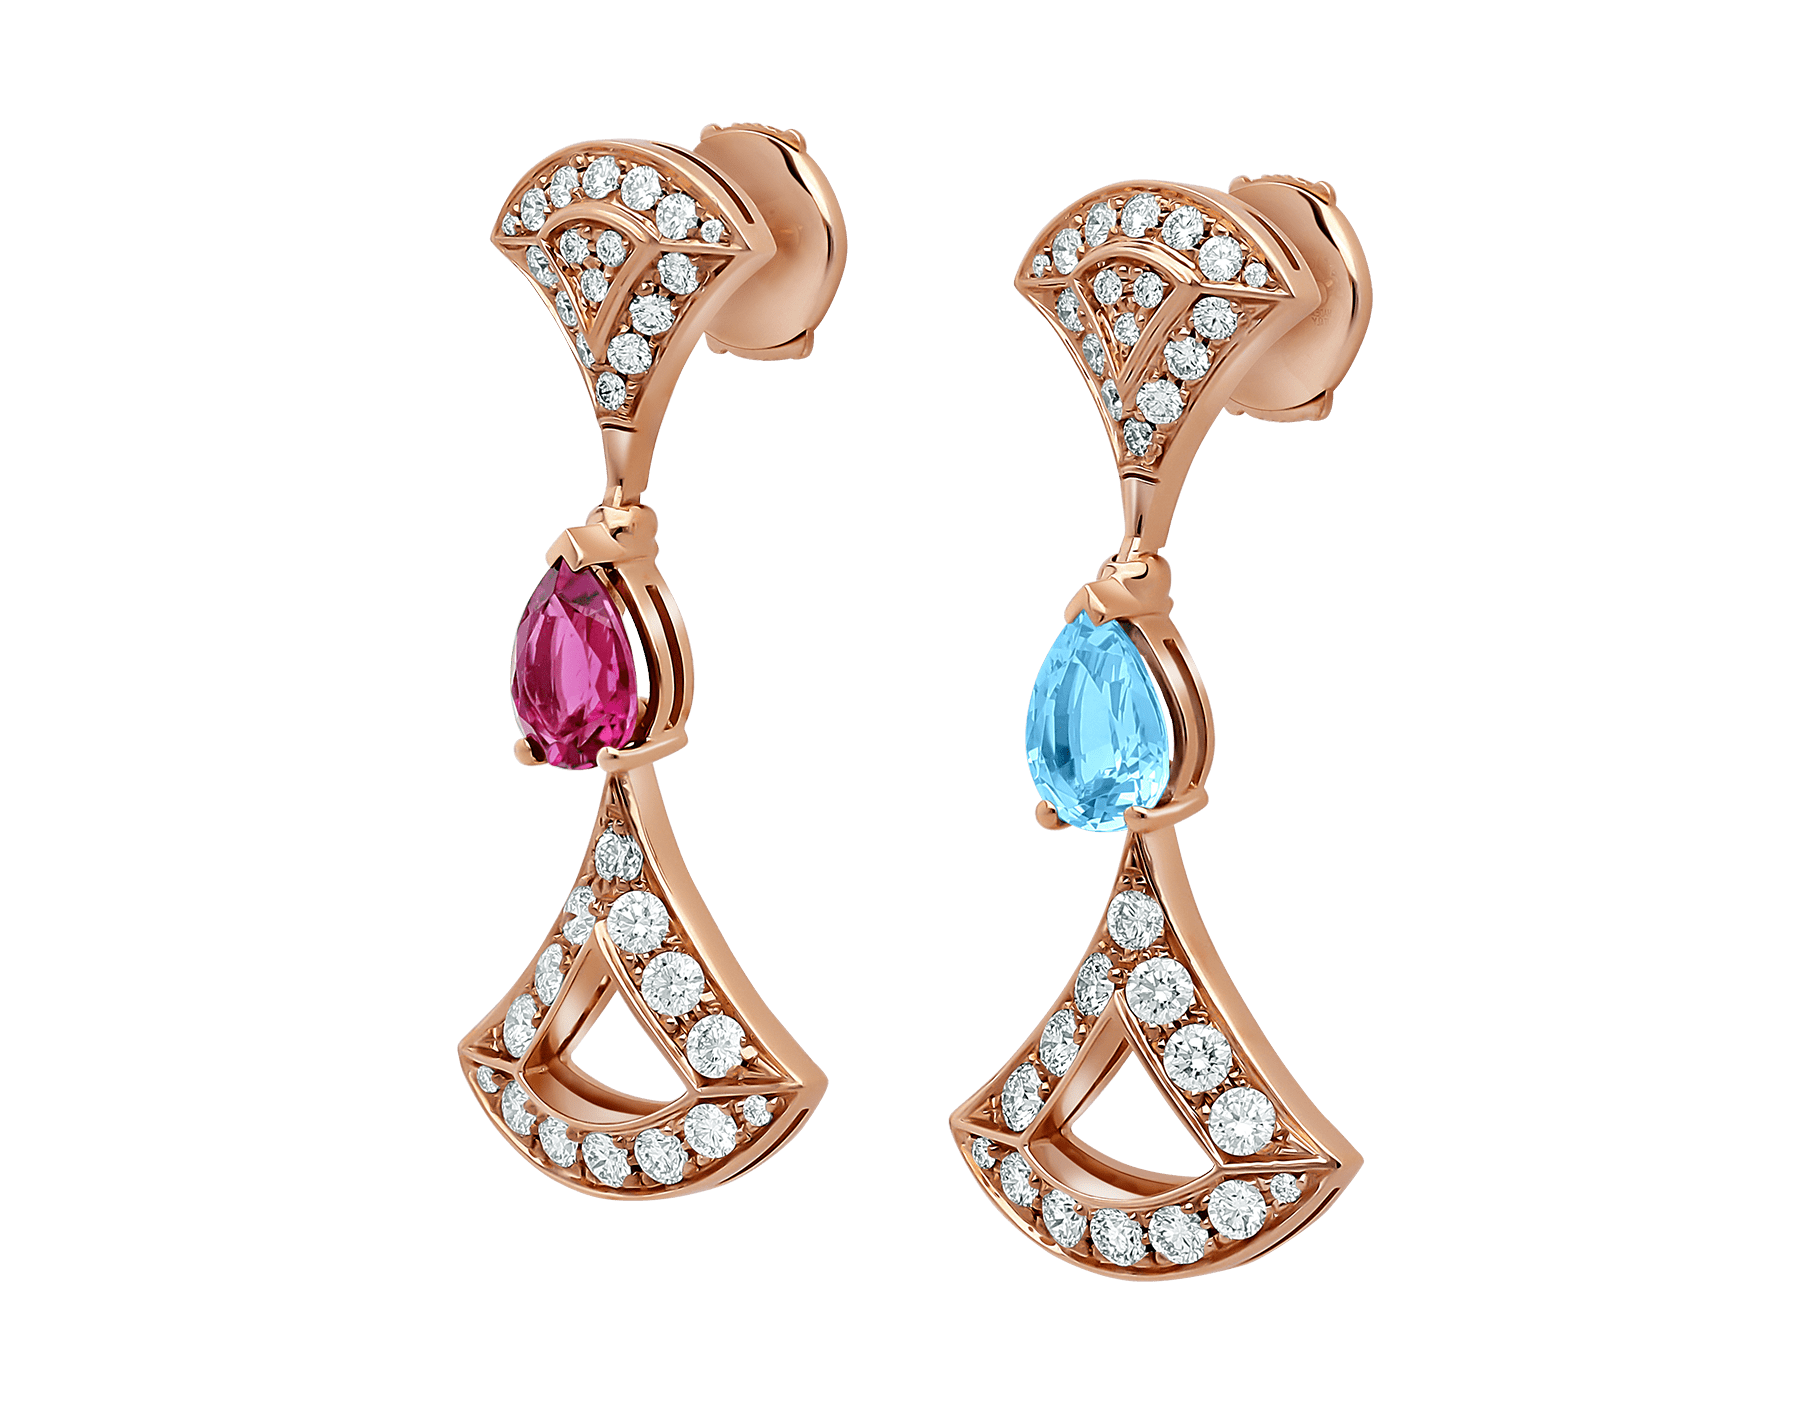 Boucles d'oreilles DIVAS' DREAM en or rose 18 K serties de pierres de couleur et pavé diamants 355620 image 2